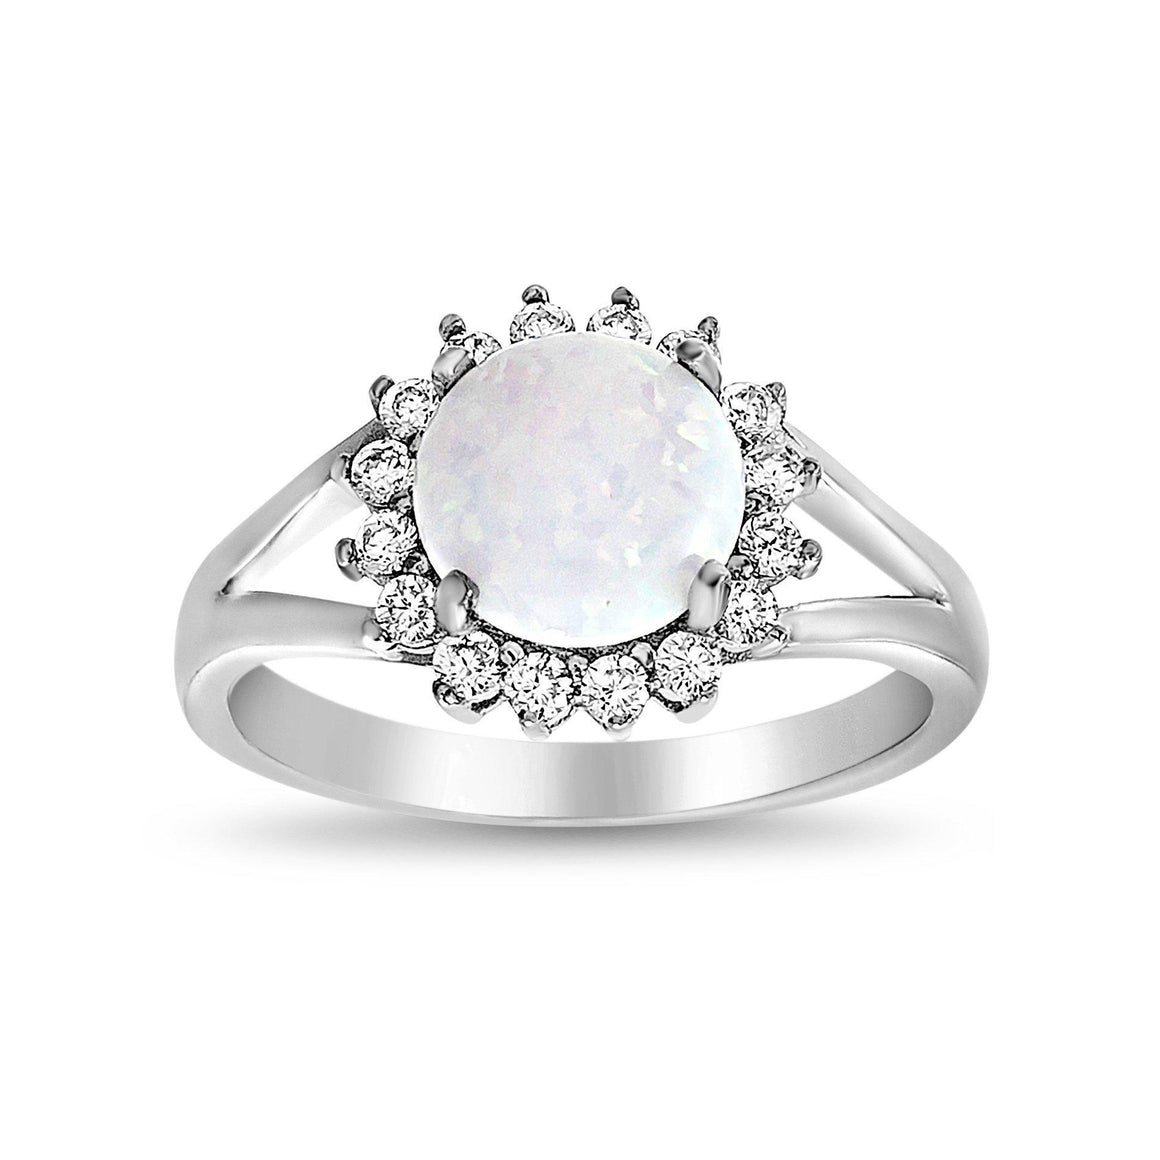 SILVER OPAL/CZ HALO RING - Atlanta Jewelers Supply